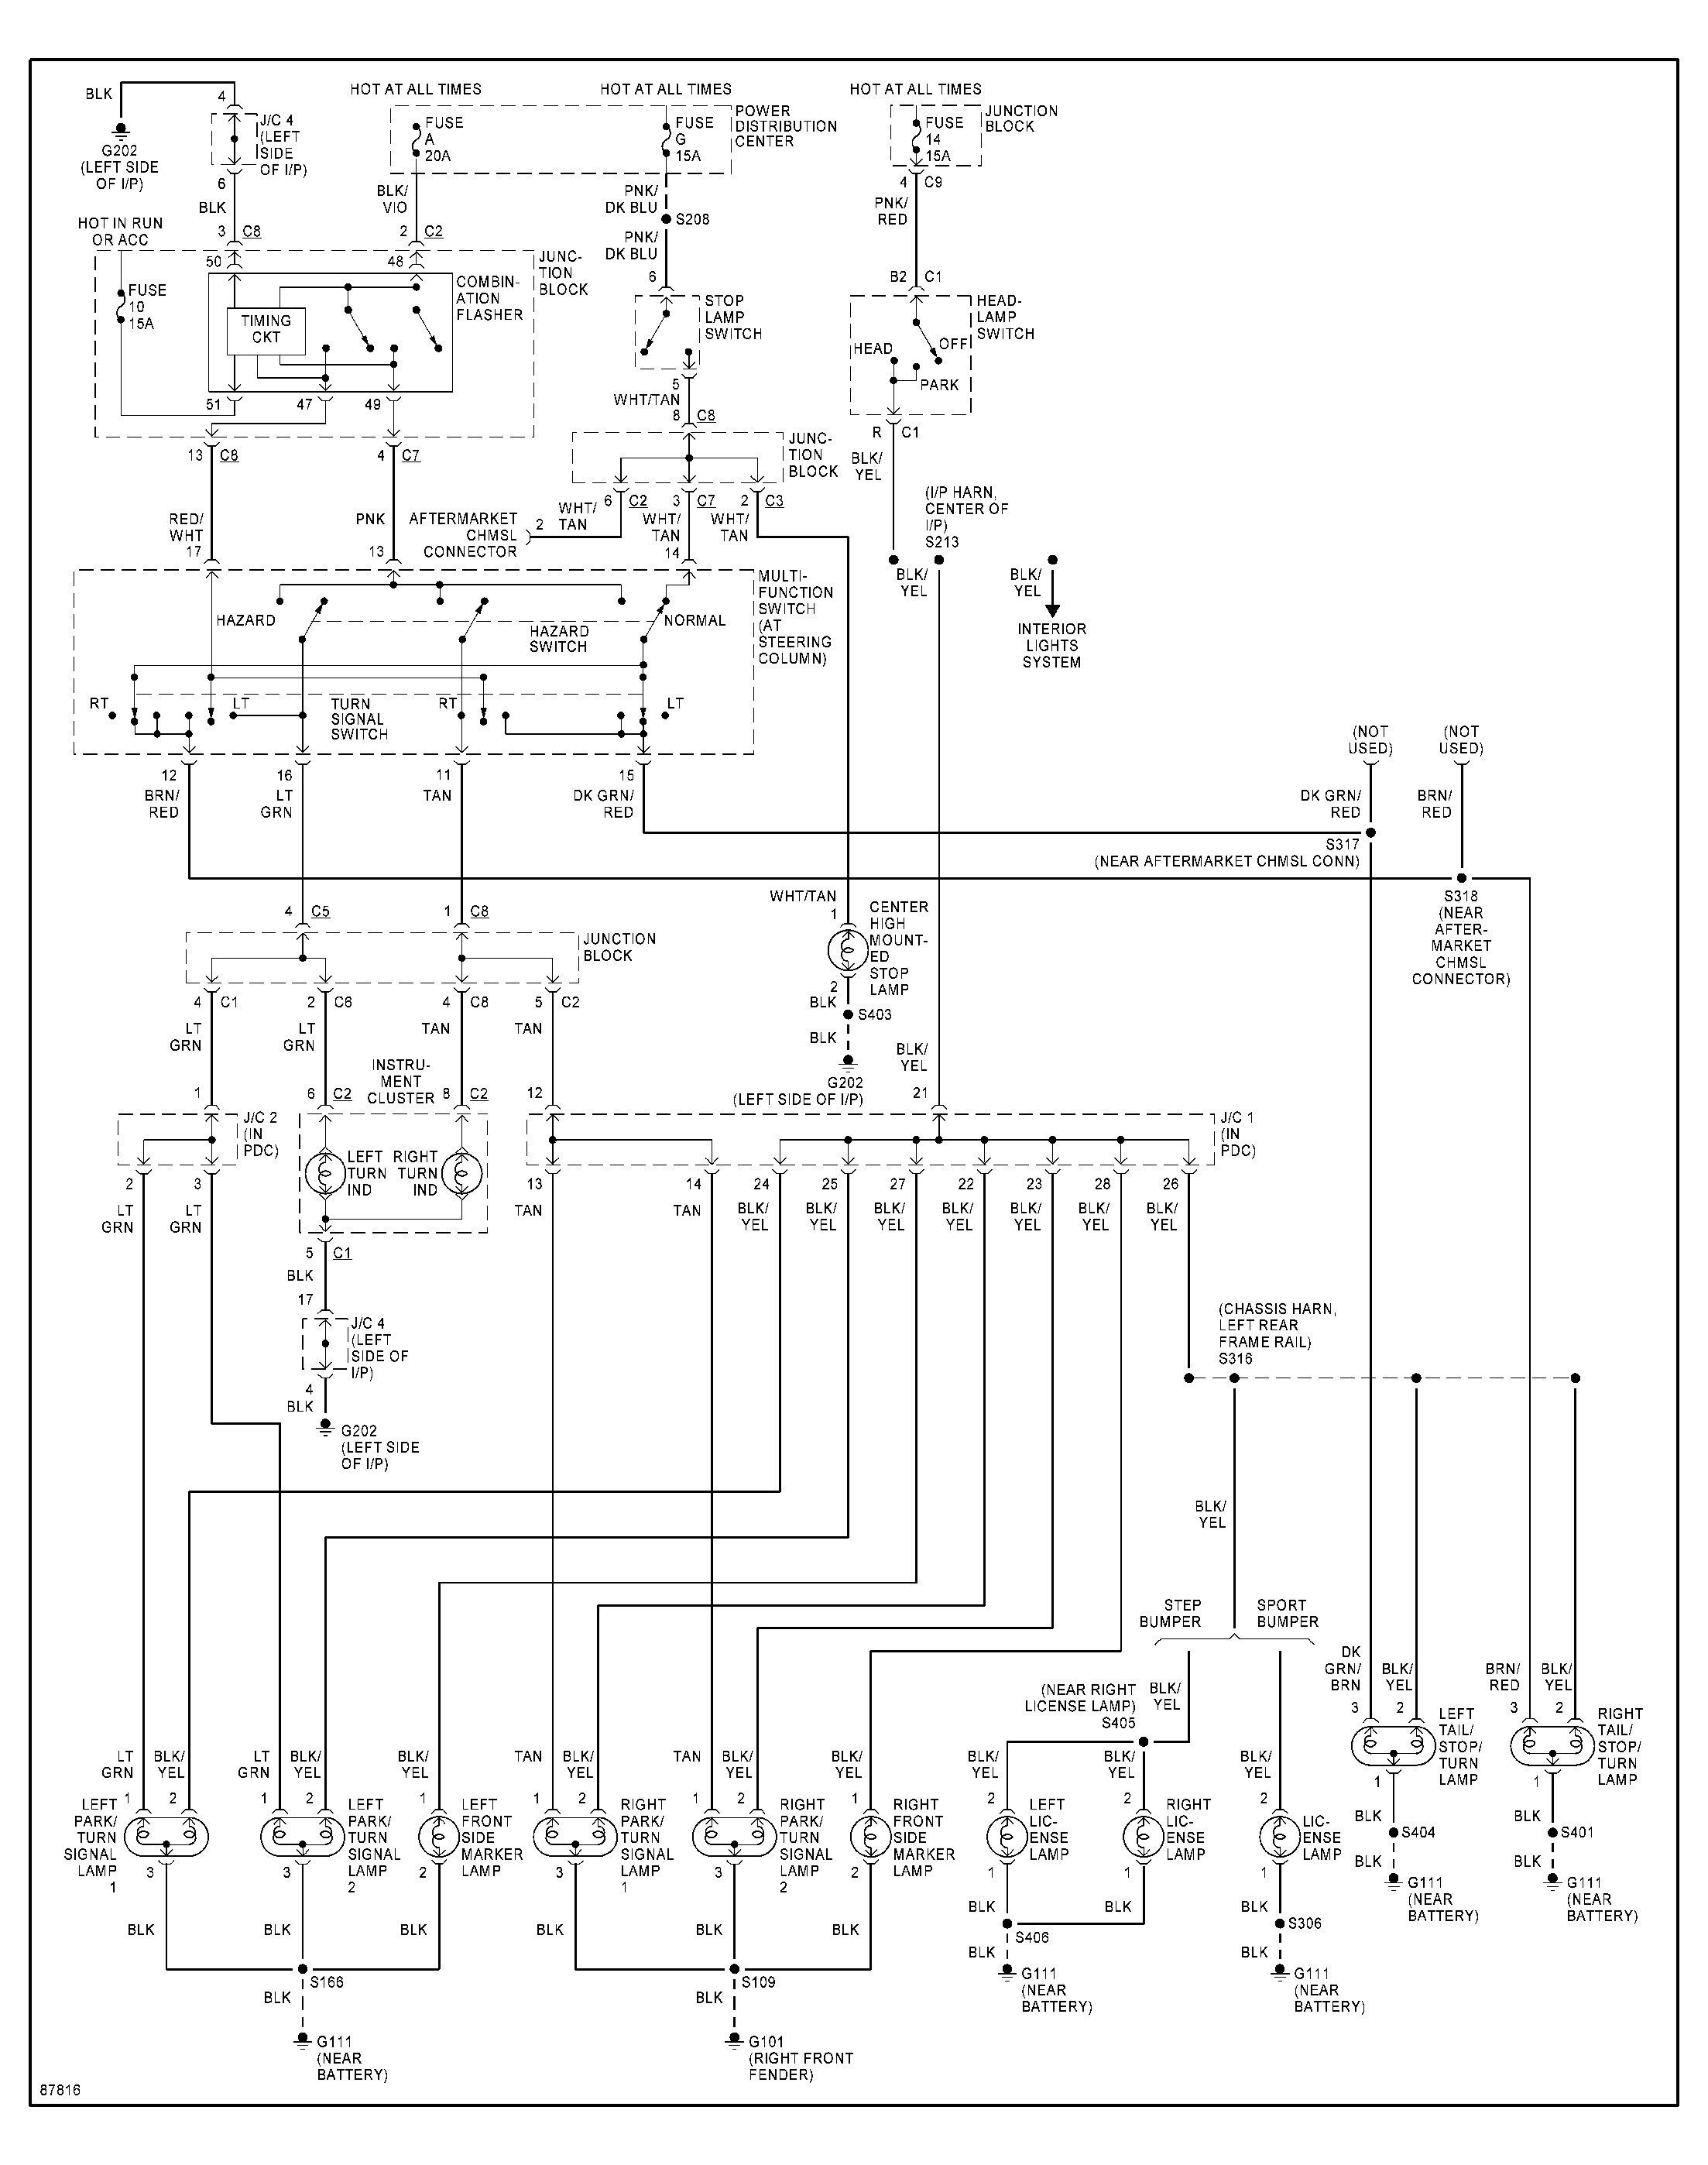 2005 Sterling Truck Wiring Diagram - Wiring Diagram Server suck-collect -  suck-collect.ristoranteitredenari.it | 99 Sterling Wiring Diagram |  | Ristorante I Tre Denari Manerbio